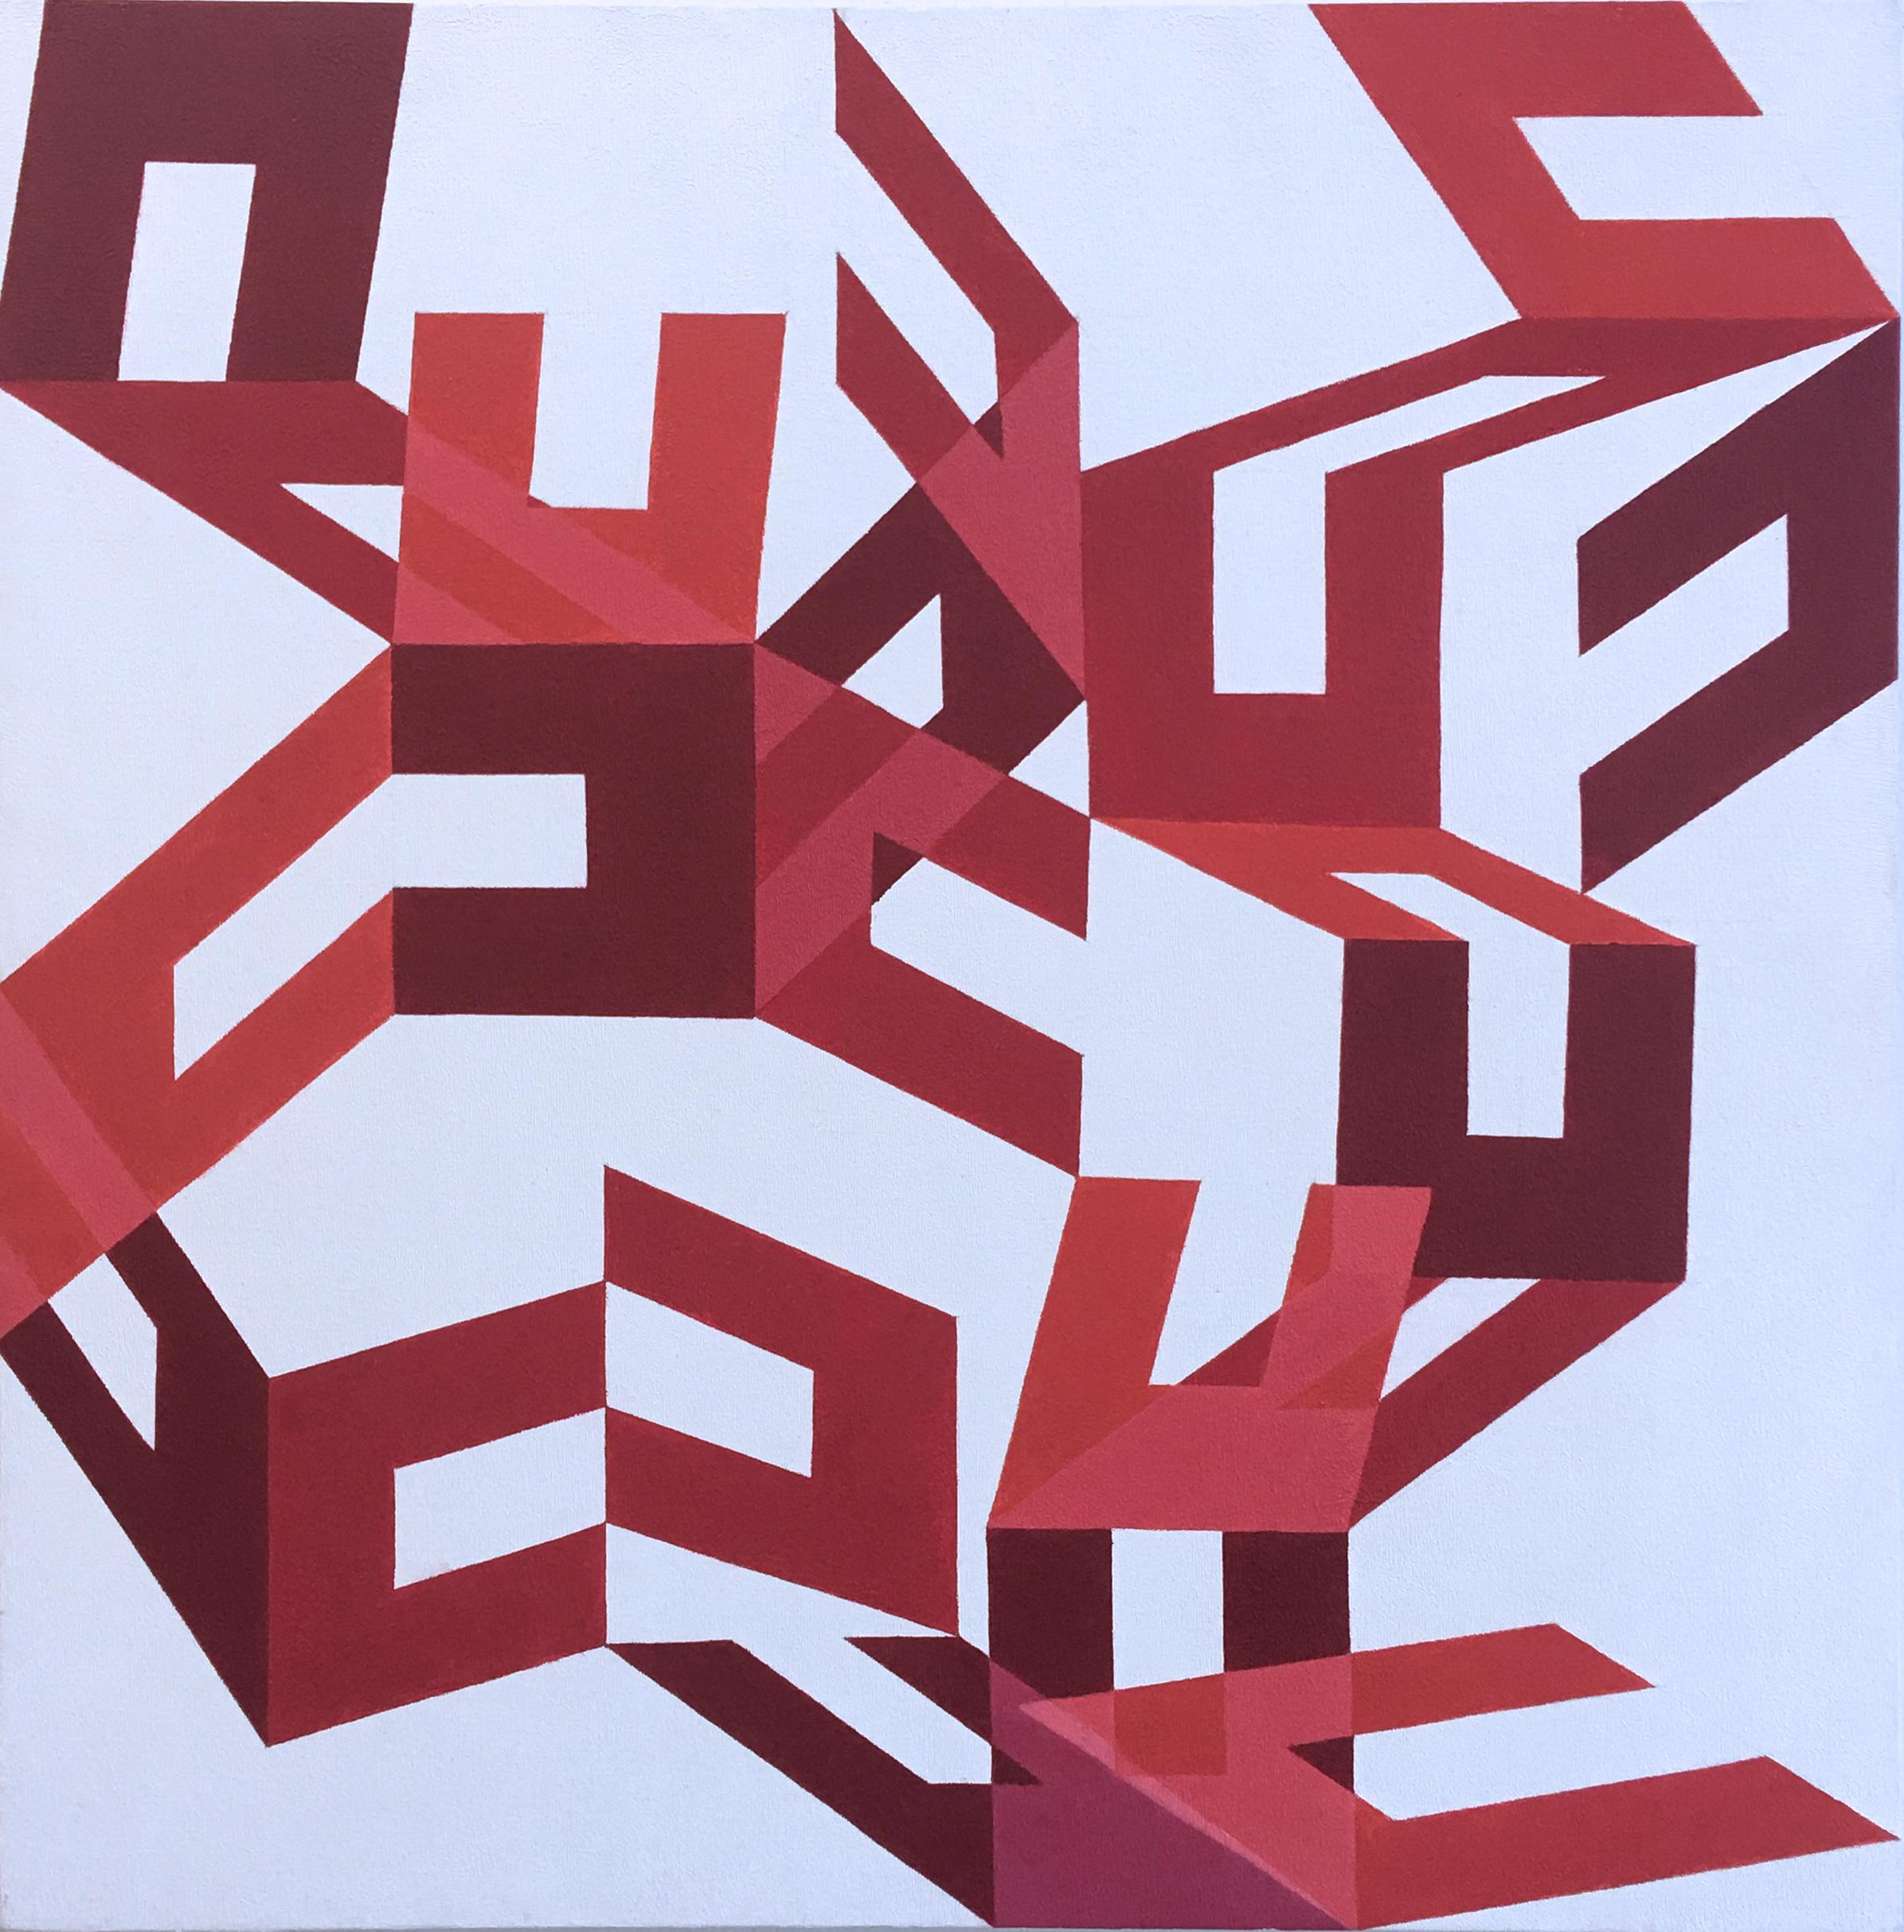 Rosebud, 2013, abstract geometric, large scale canvas painting, oil, red, white